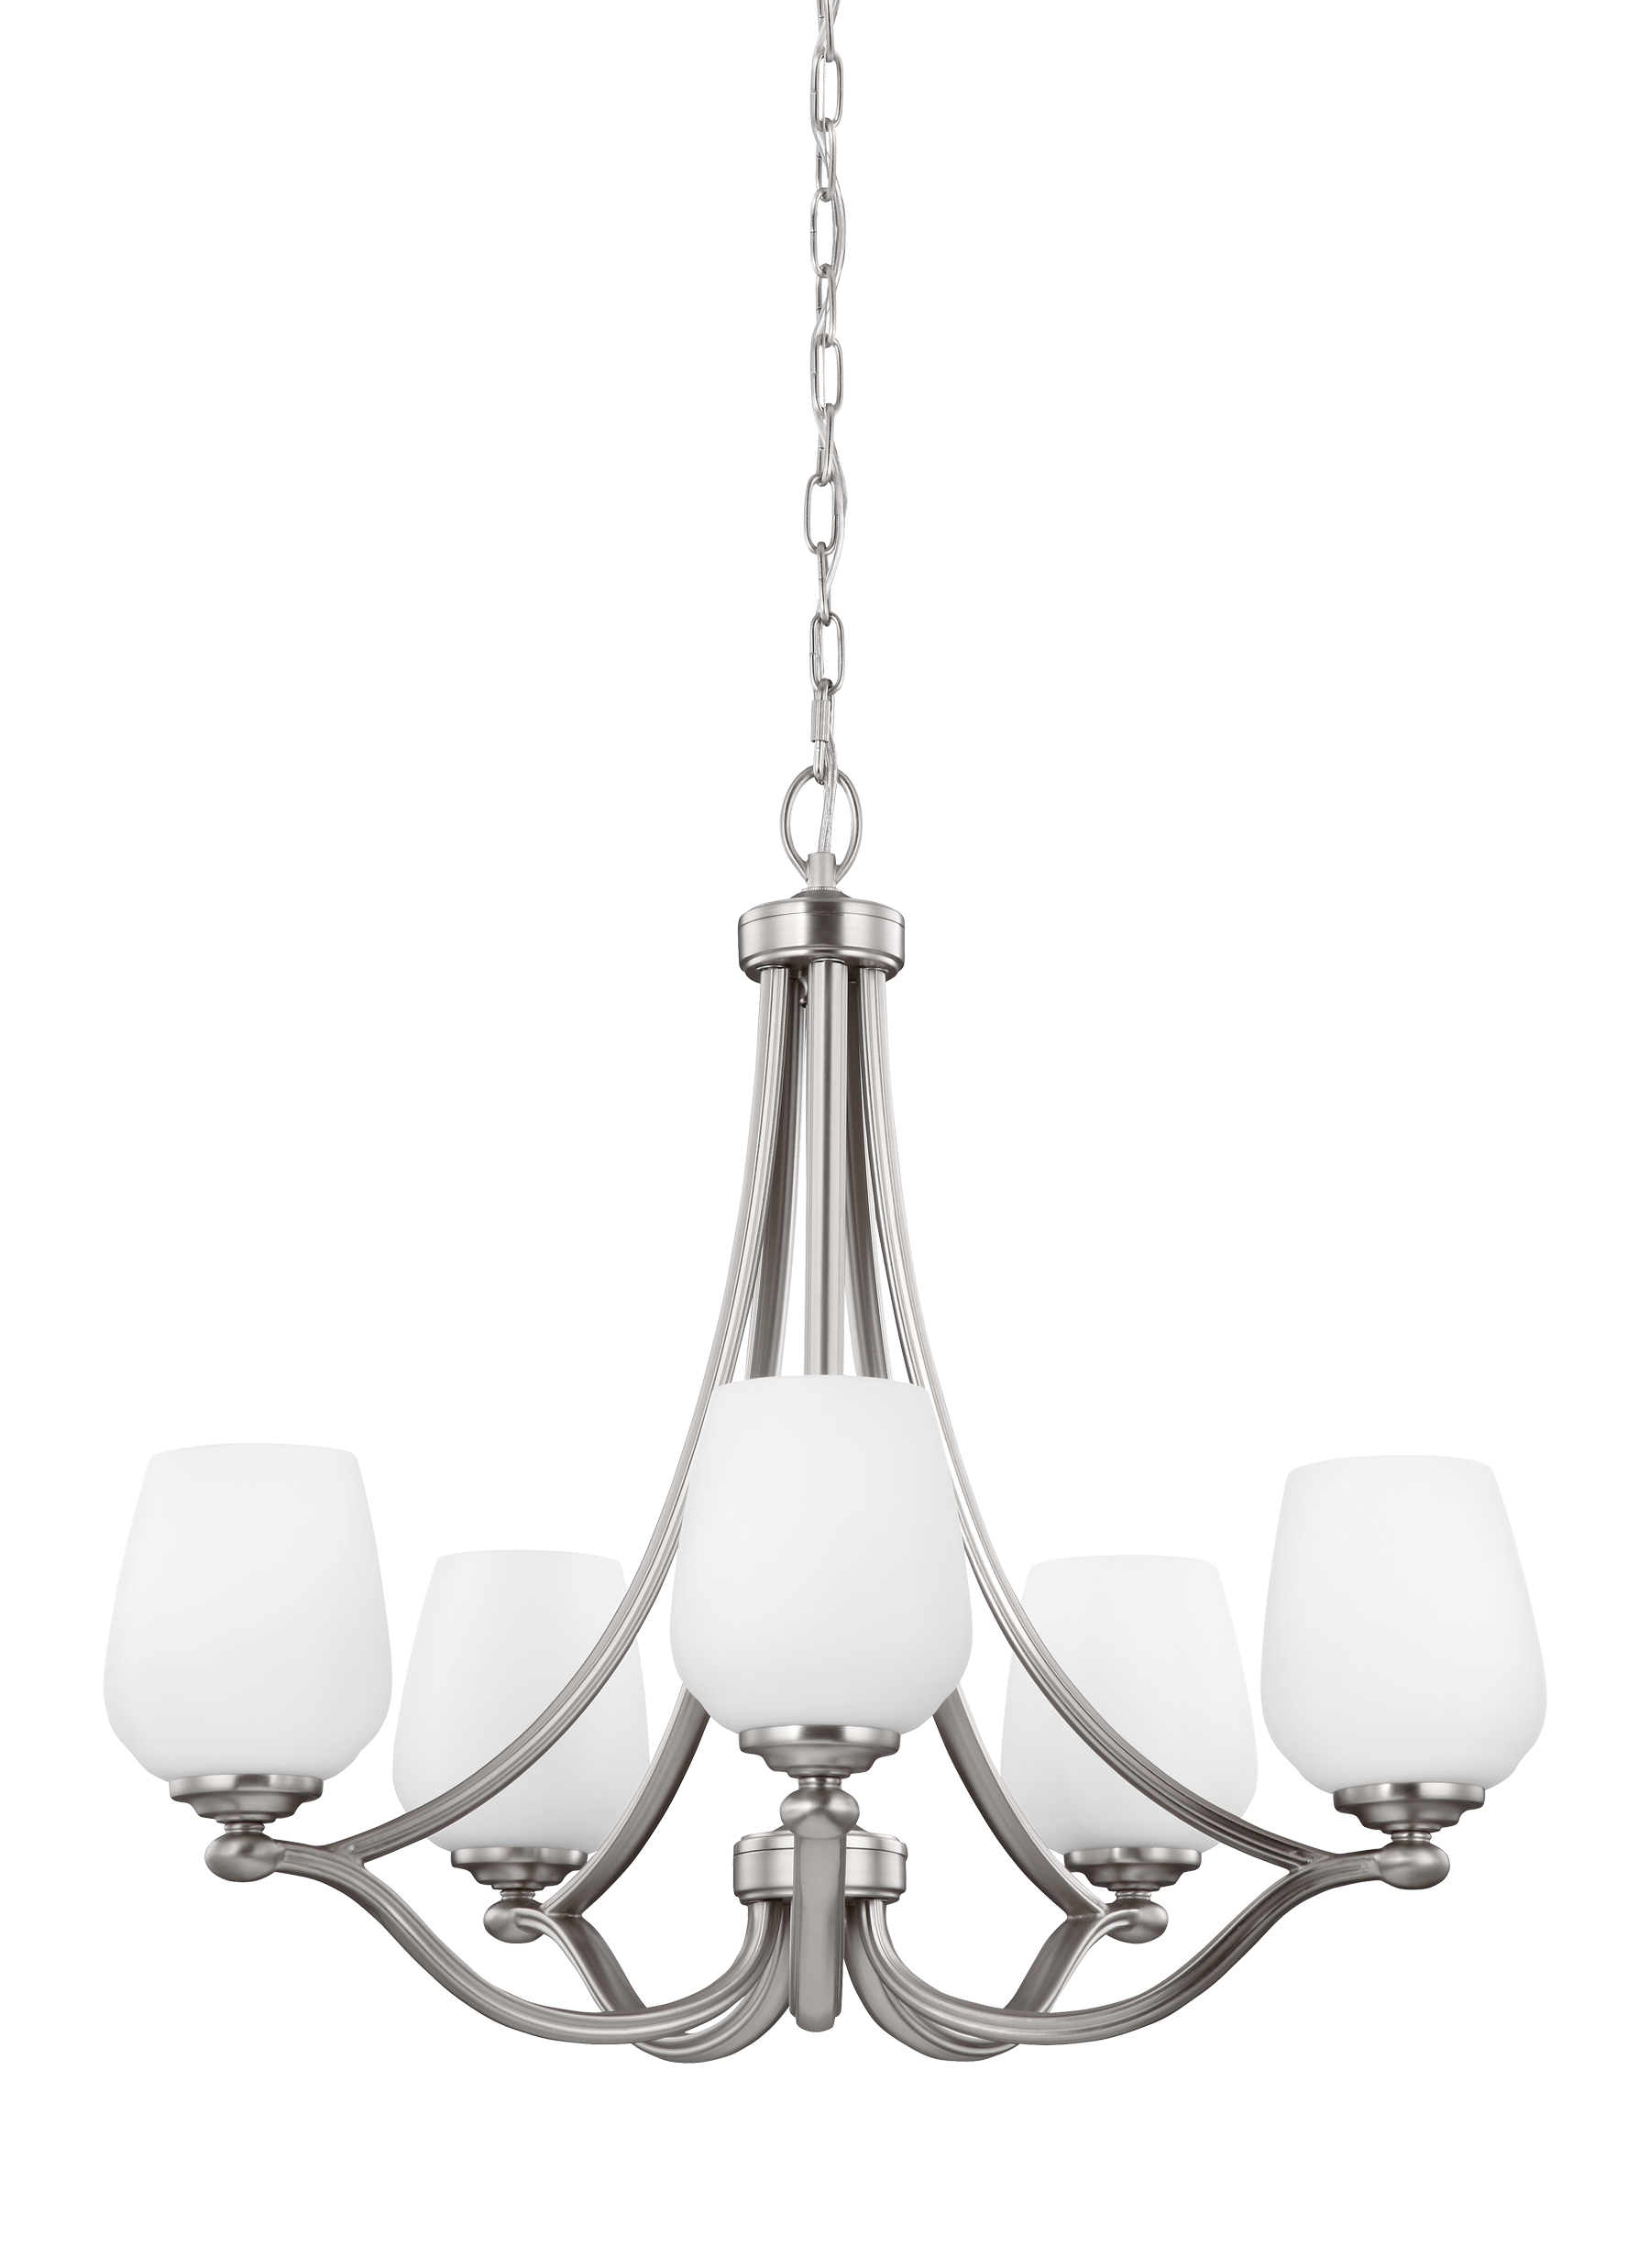 minka chandeliers nickel light ceiling edison chandelier brushed lamps com lavery lights downtown industrial